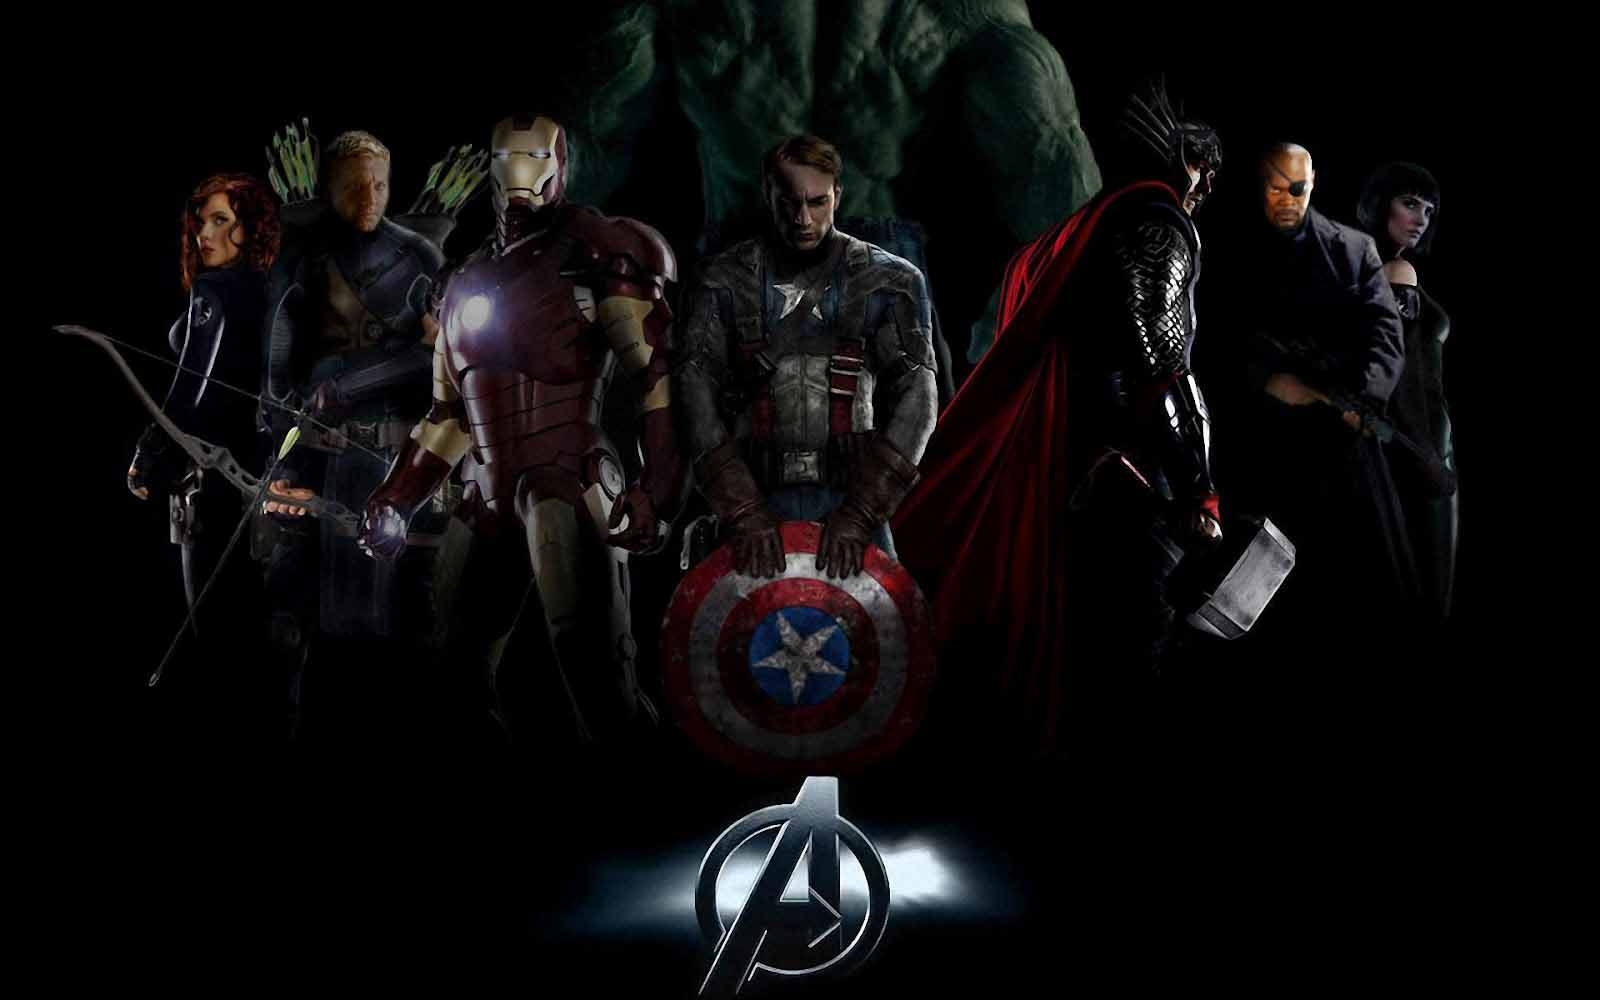 Avengers HD Wallpaper For Free